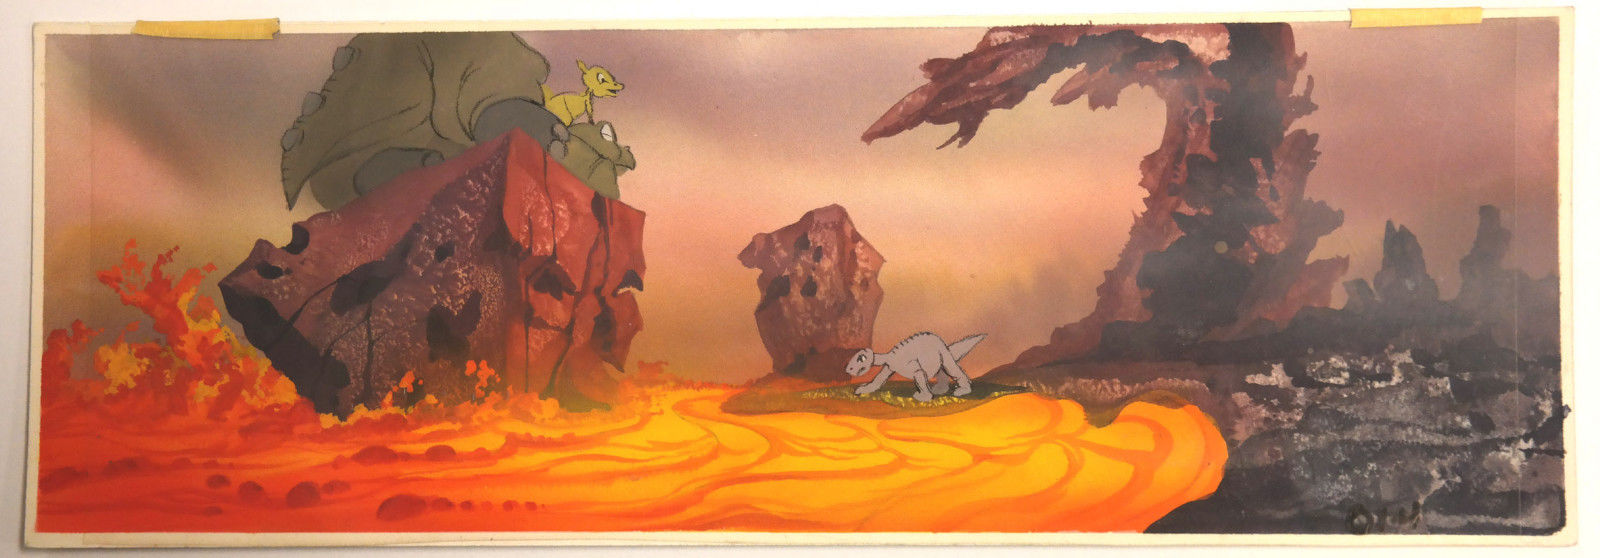 Littlefoot_Ducky_Spike_LAND_BEFORE_TIME_Key_Concept_DON_BLUTH_Production_cel_Art.jpg